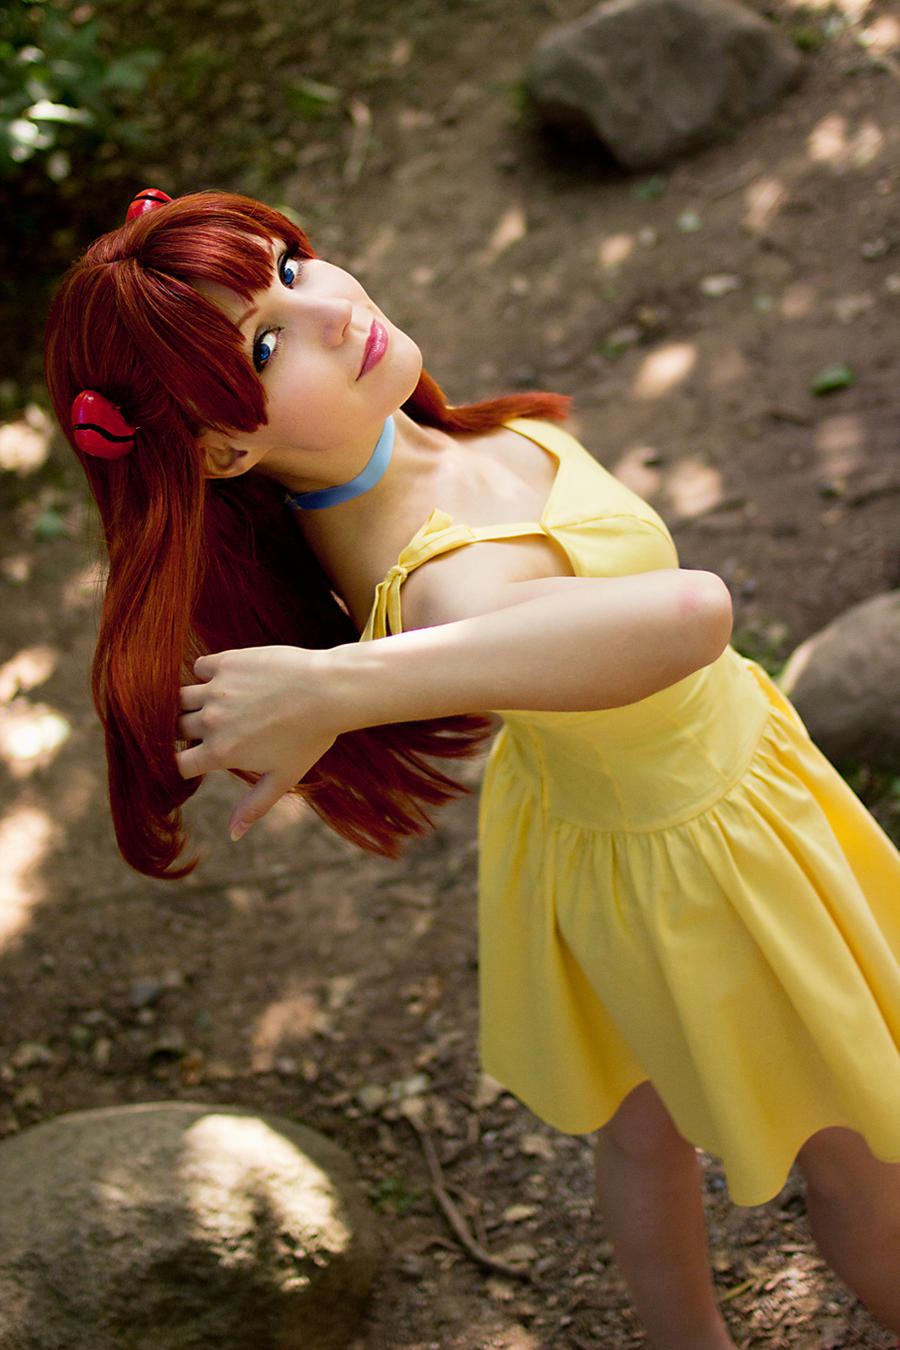 Asuka - Summer dress by Lie-chee